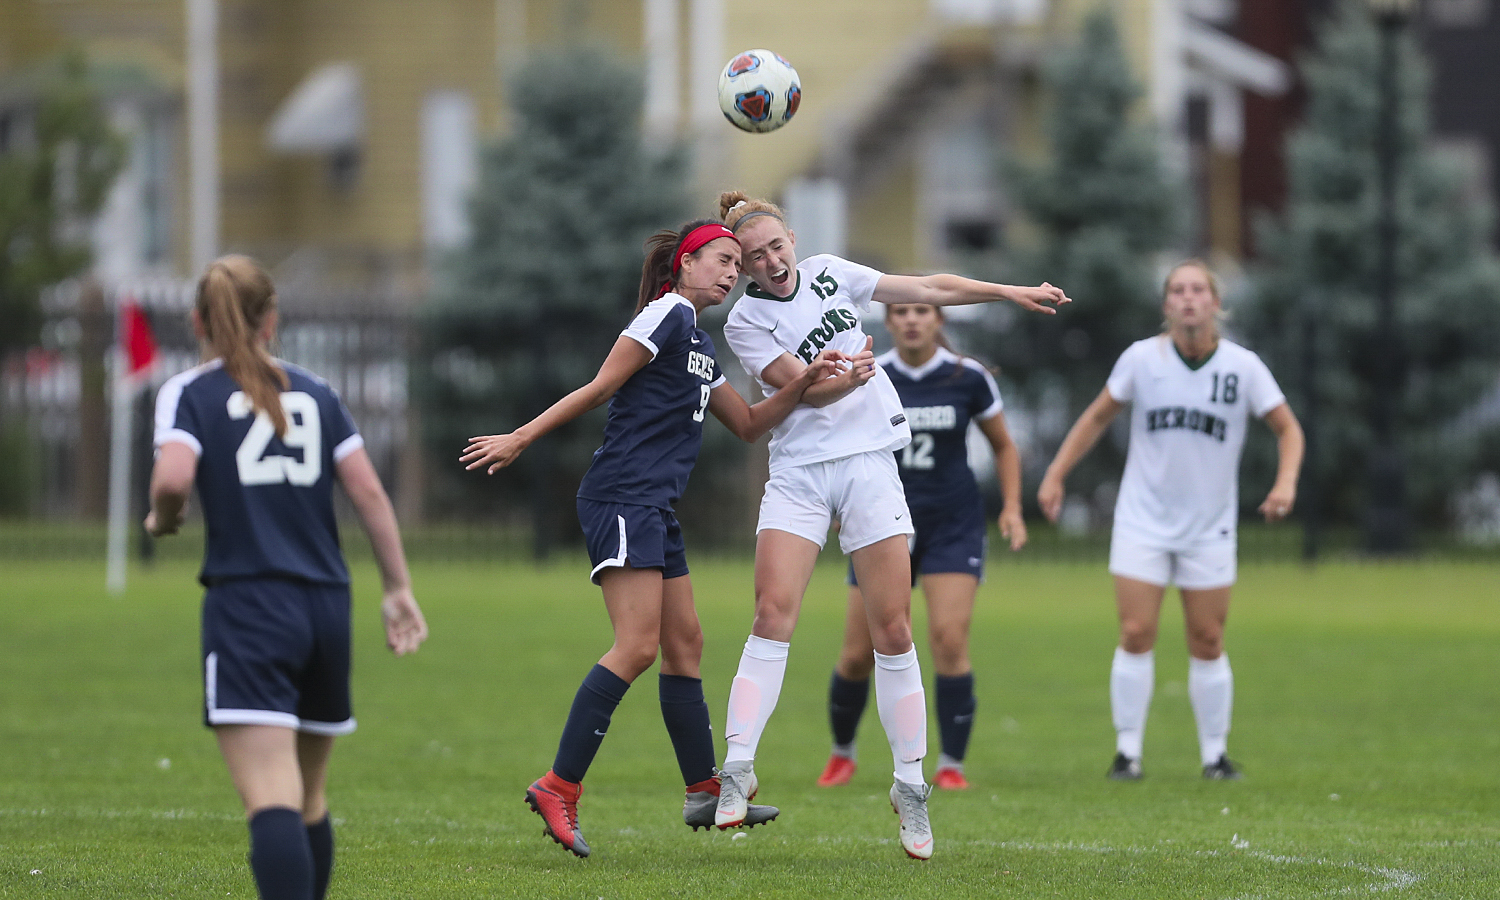 Katie Mandarano 'X battles a defender during the Heron's 3-0 win over the SUNY Geneseo Knights on Wednesday.